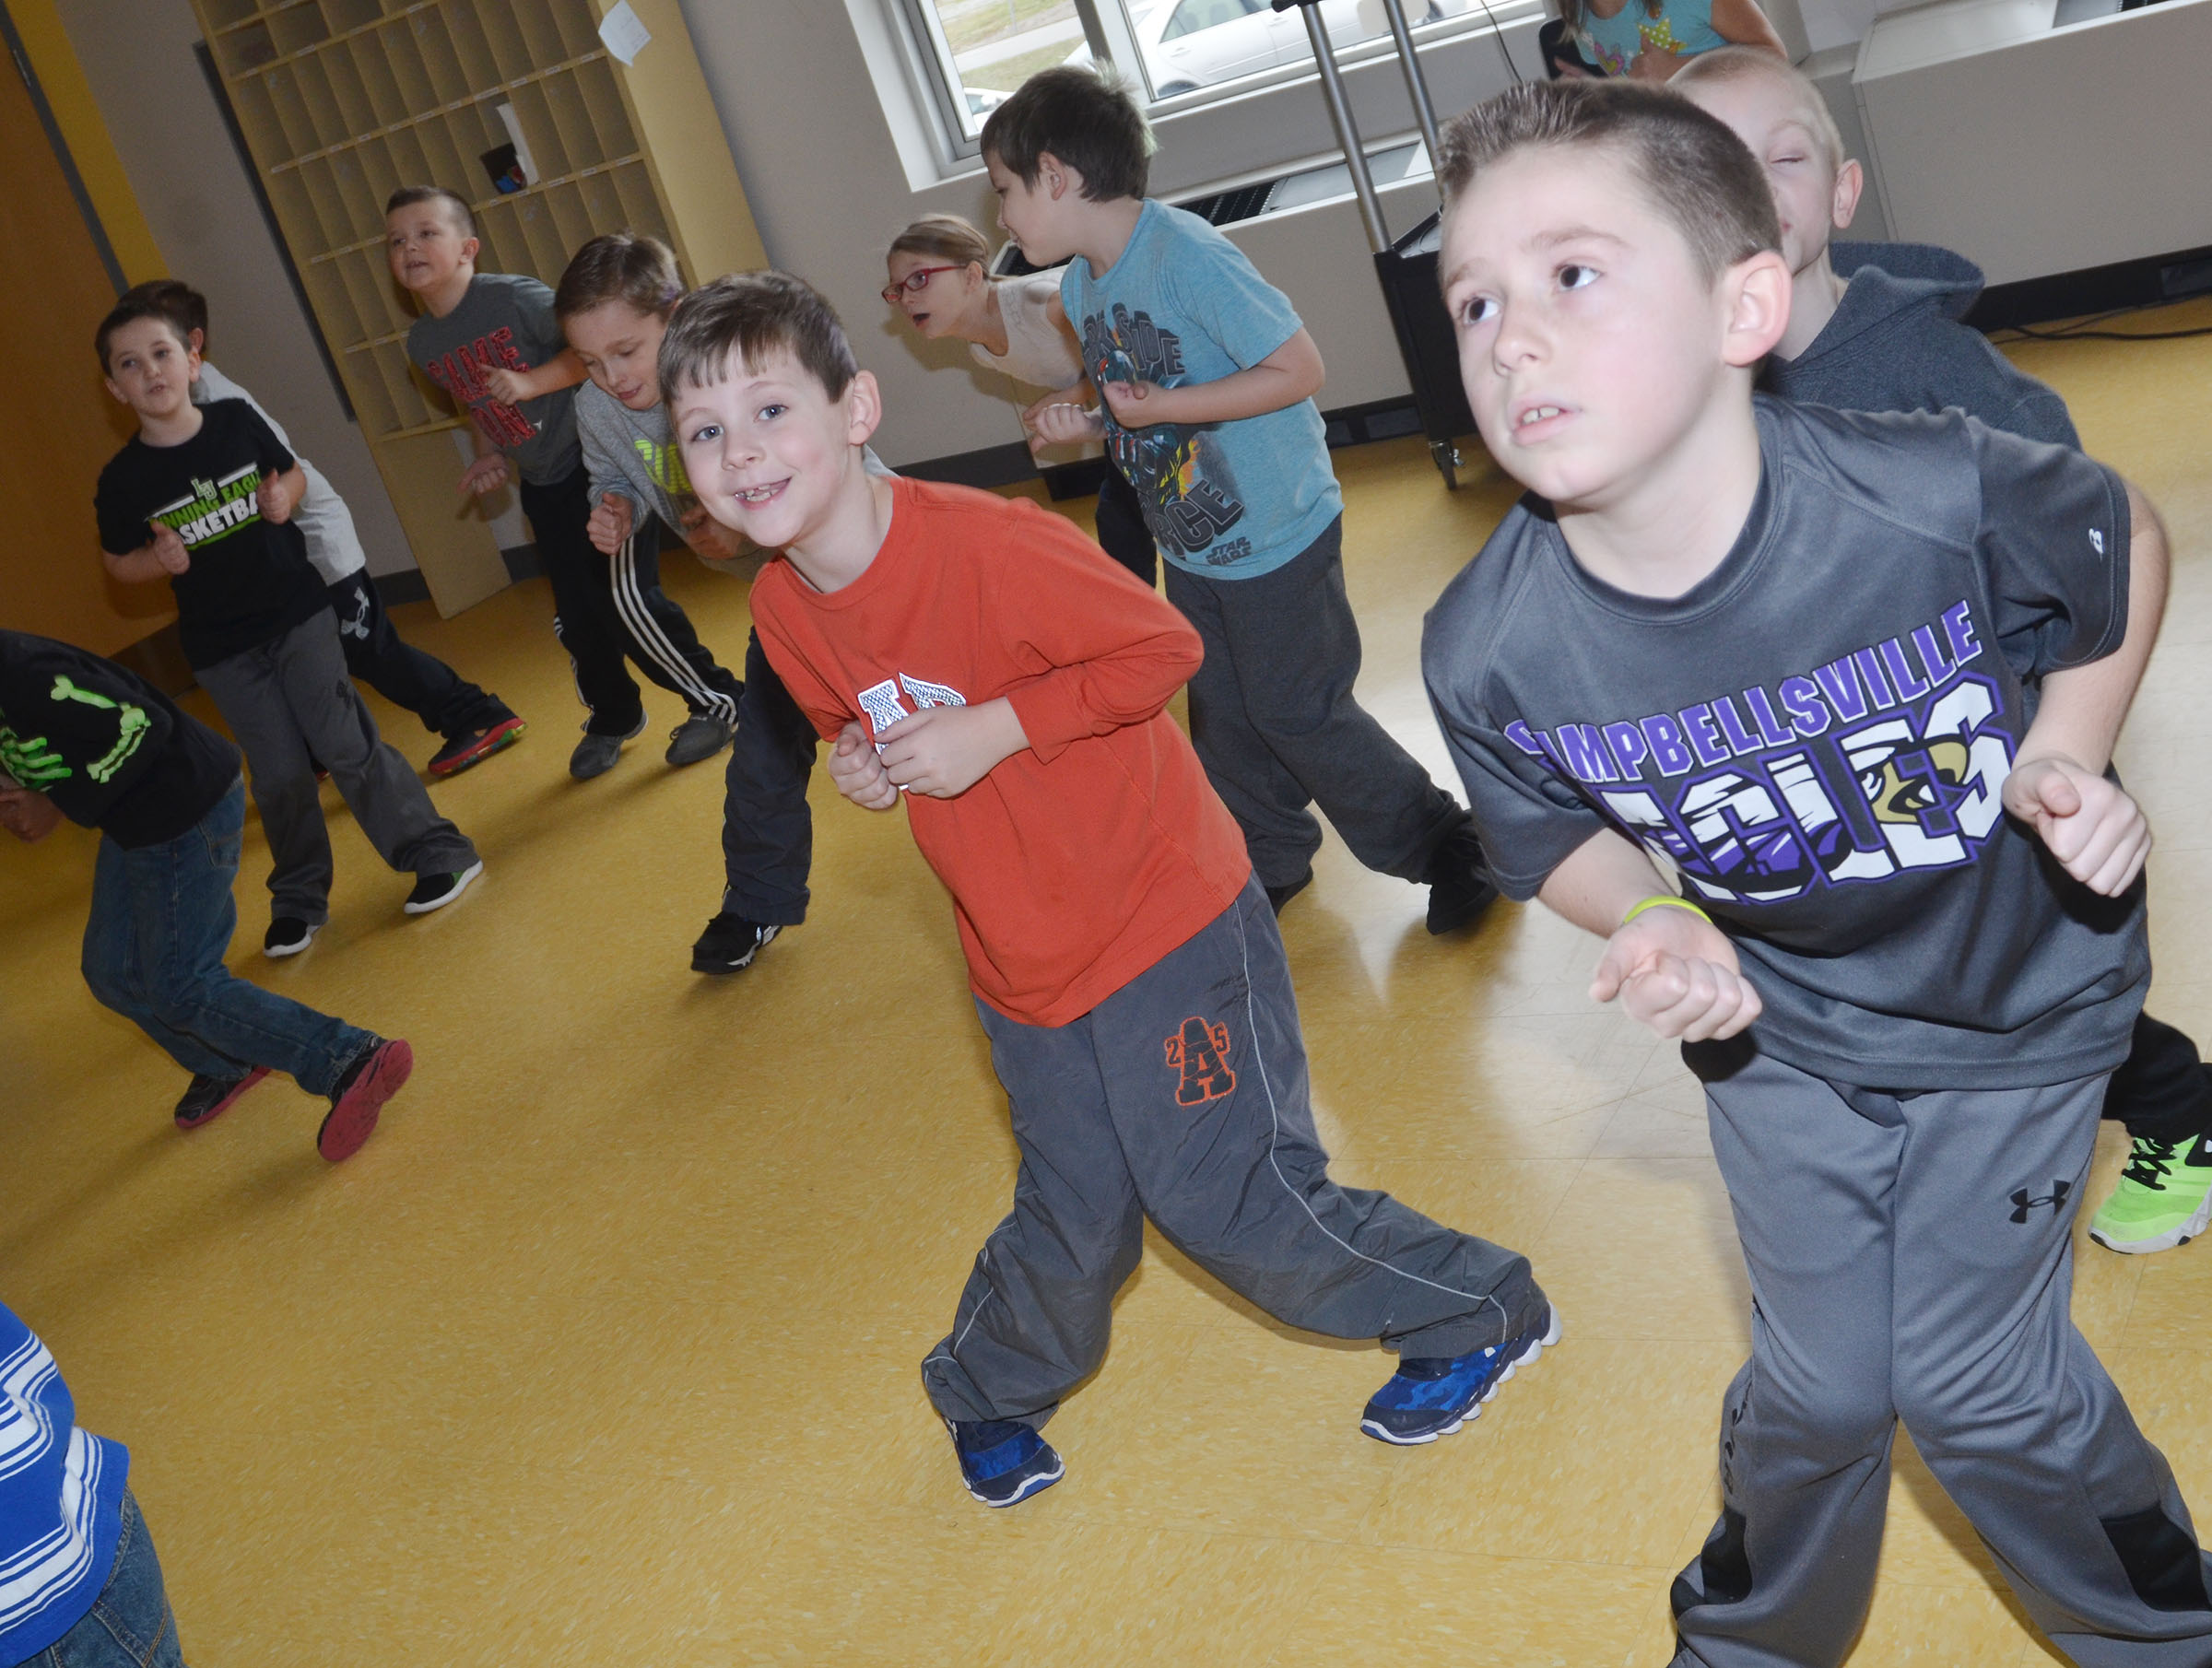 CES second-graders dance as they work out. In front are Ryan Tungate, at left, and Lanigan Price.